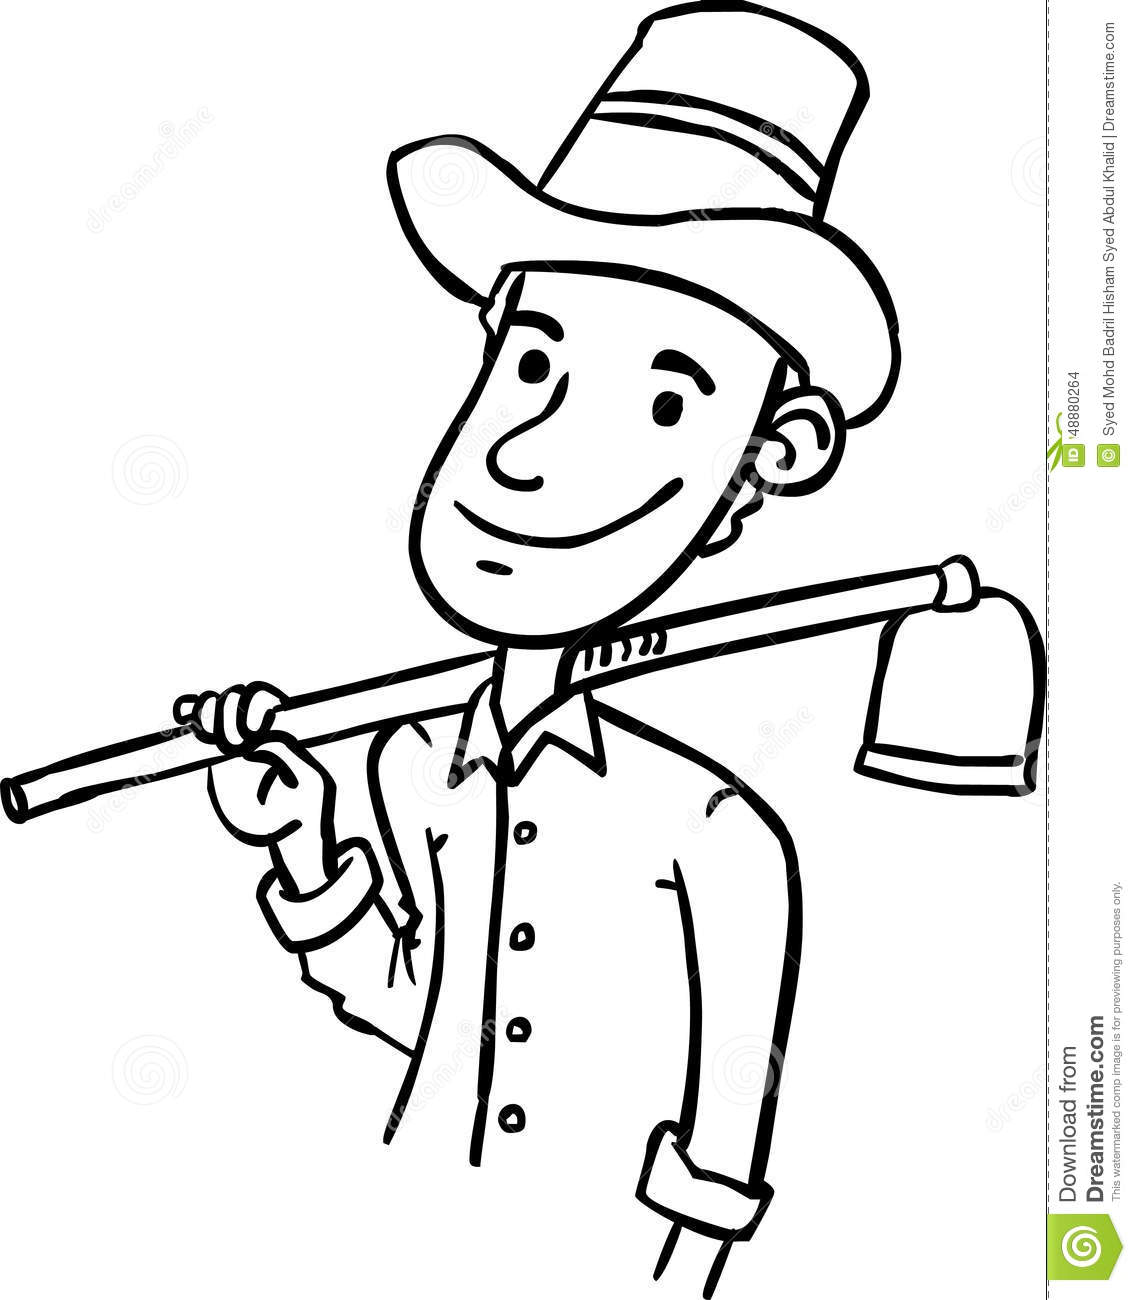 Farmer Stock Illustration - Image: 48880264